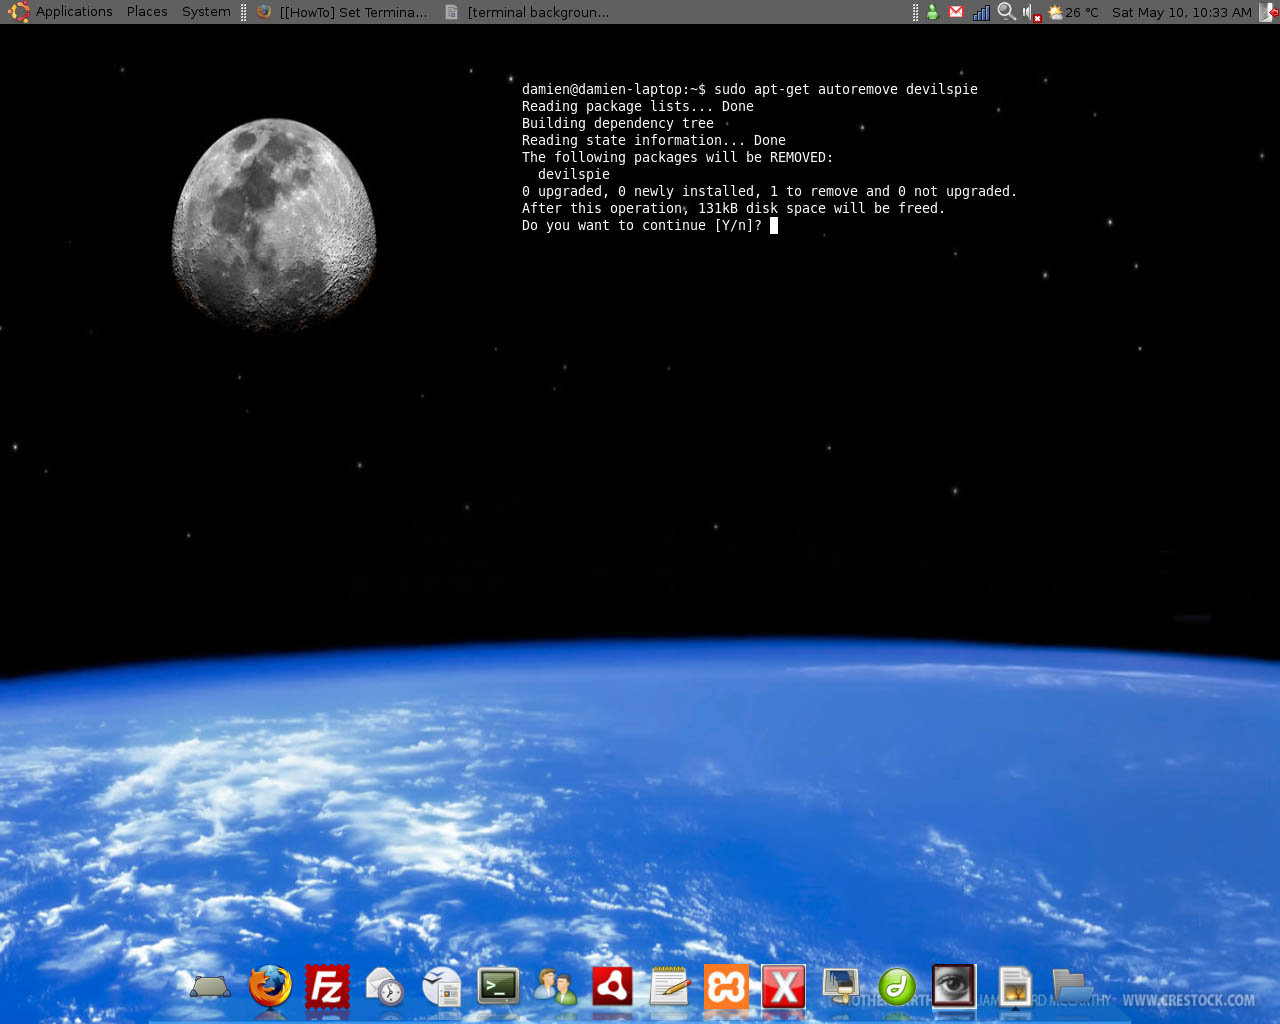 terminal services default wallpaper How to turn on background in remote desktop on server 2012 then performance - wallpaper how to turn on background in remote desktop on server 2012.